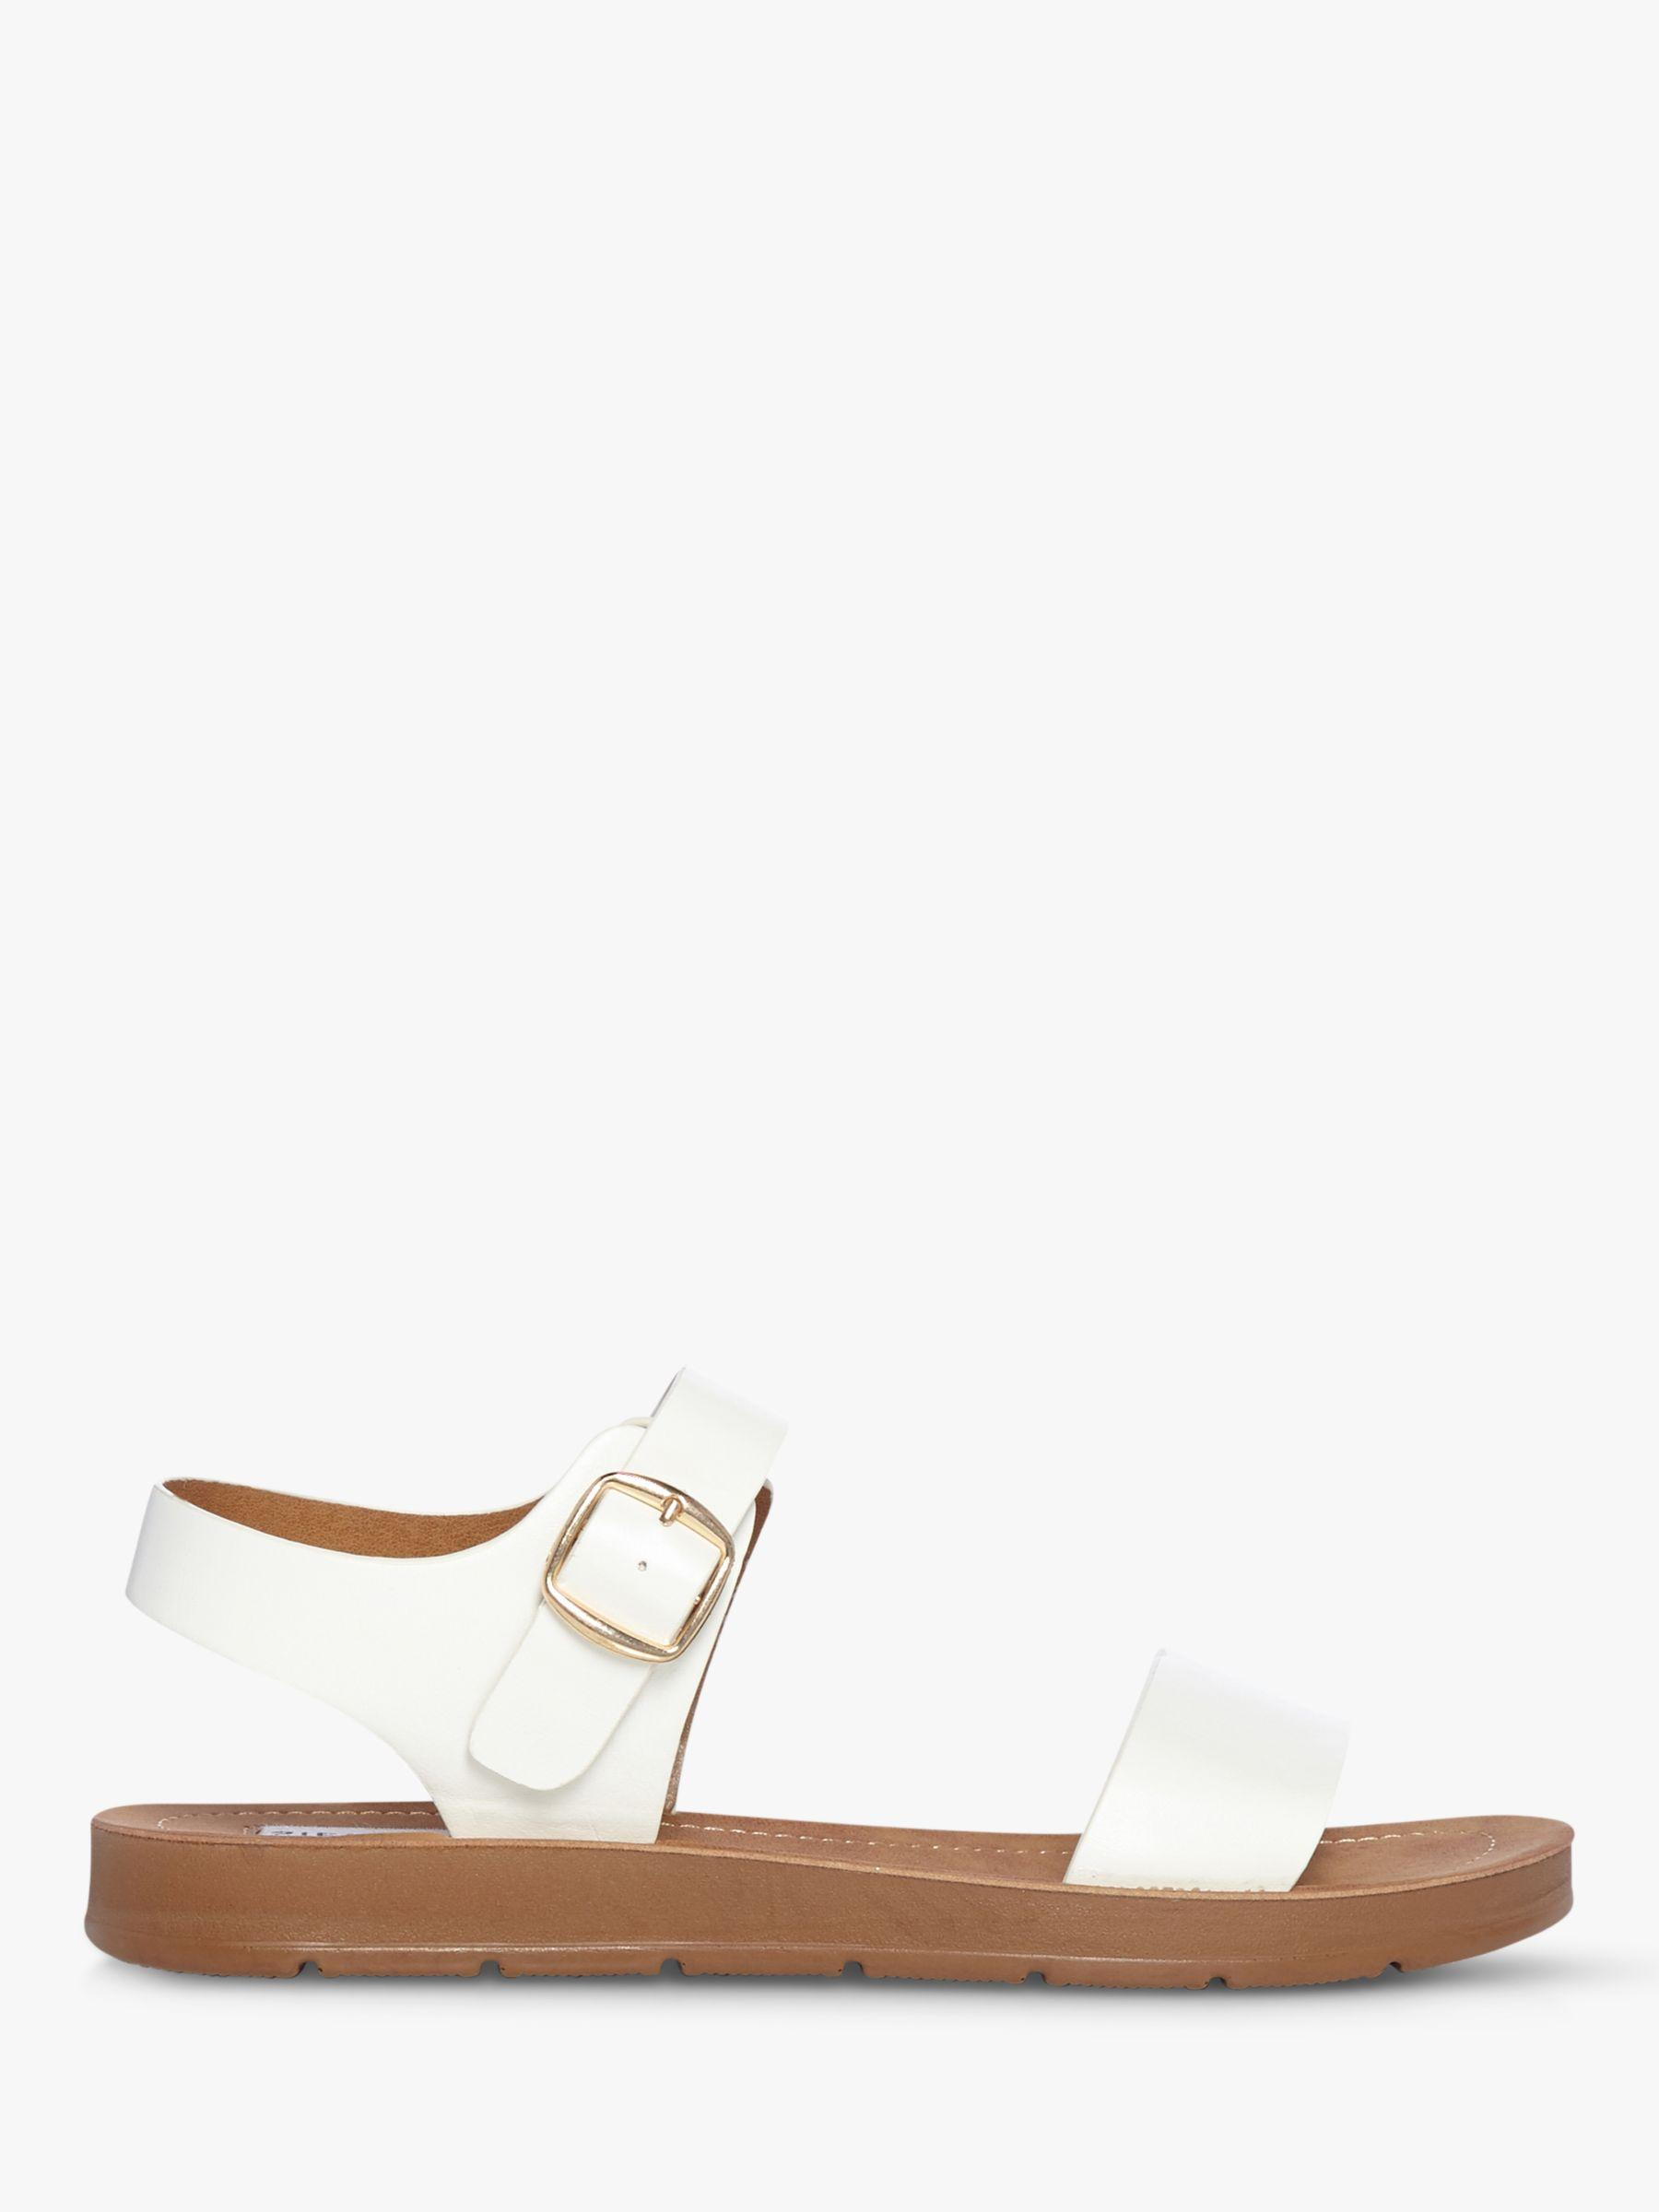 9d4f2e46de1 Steve Madden. Women s White Probable Two Part Flat Sandals. £55 From John  Lewis and Partners